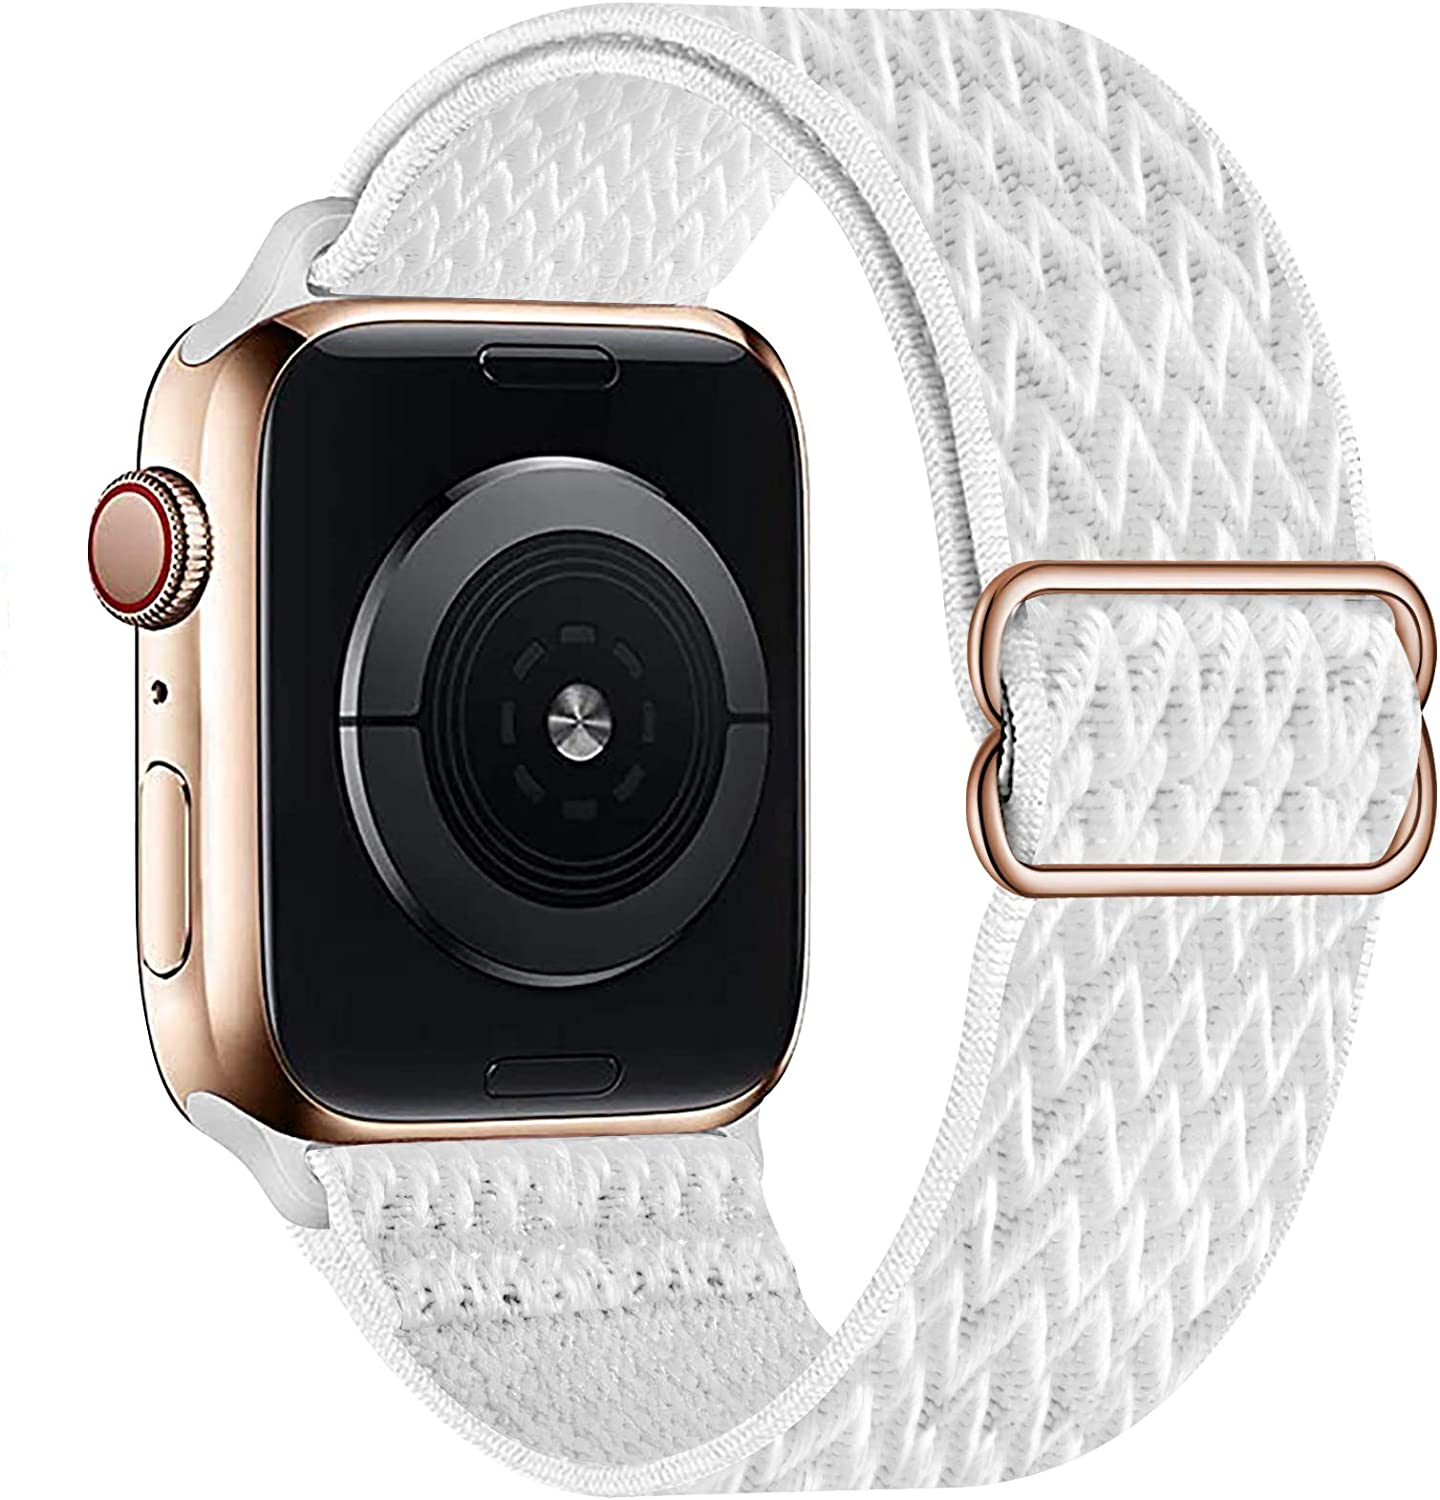 OHCBOOGIE Stretchy Solo Loop Strap Compatible with Apple Watch Bands 38mm 40mm 42mm 44mm ,Adjustable Stretch Braided Sport Elastics Weave Nylon Women Men Wristband Compatible with iWatch Series 6/5/4/3/2/1 SE,Summit white,42/44mm